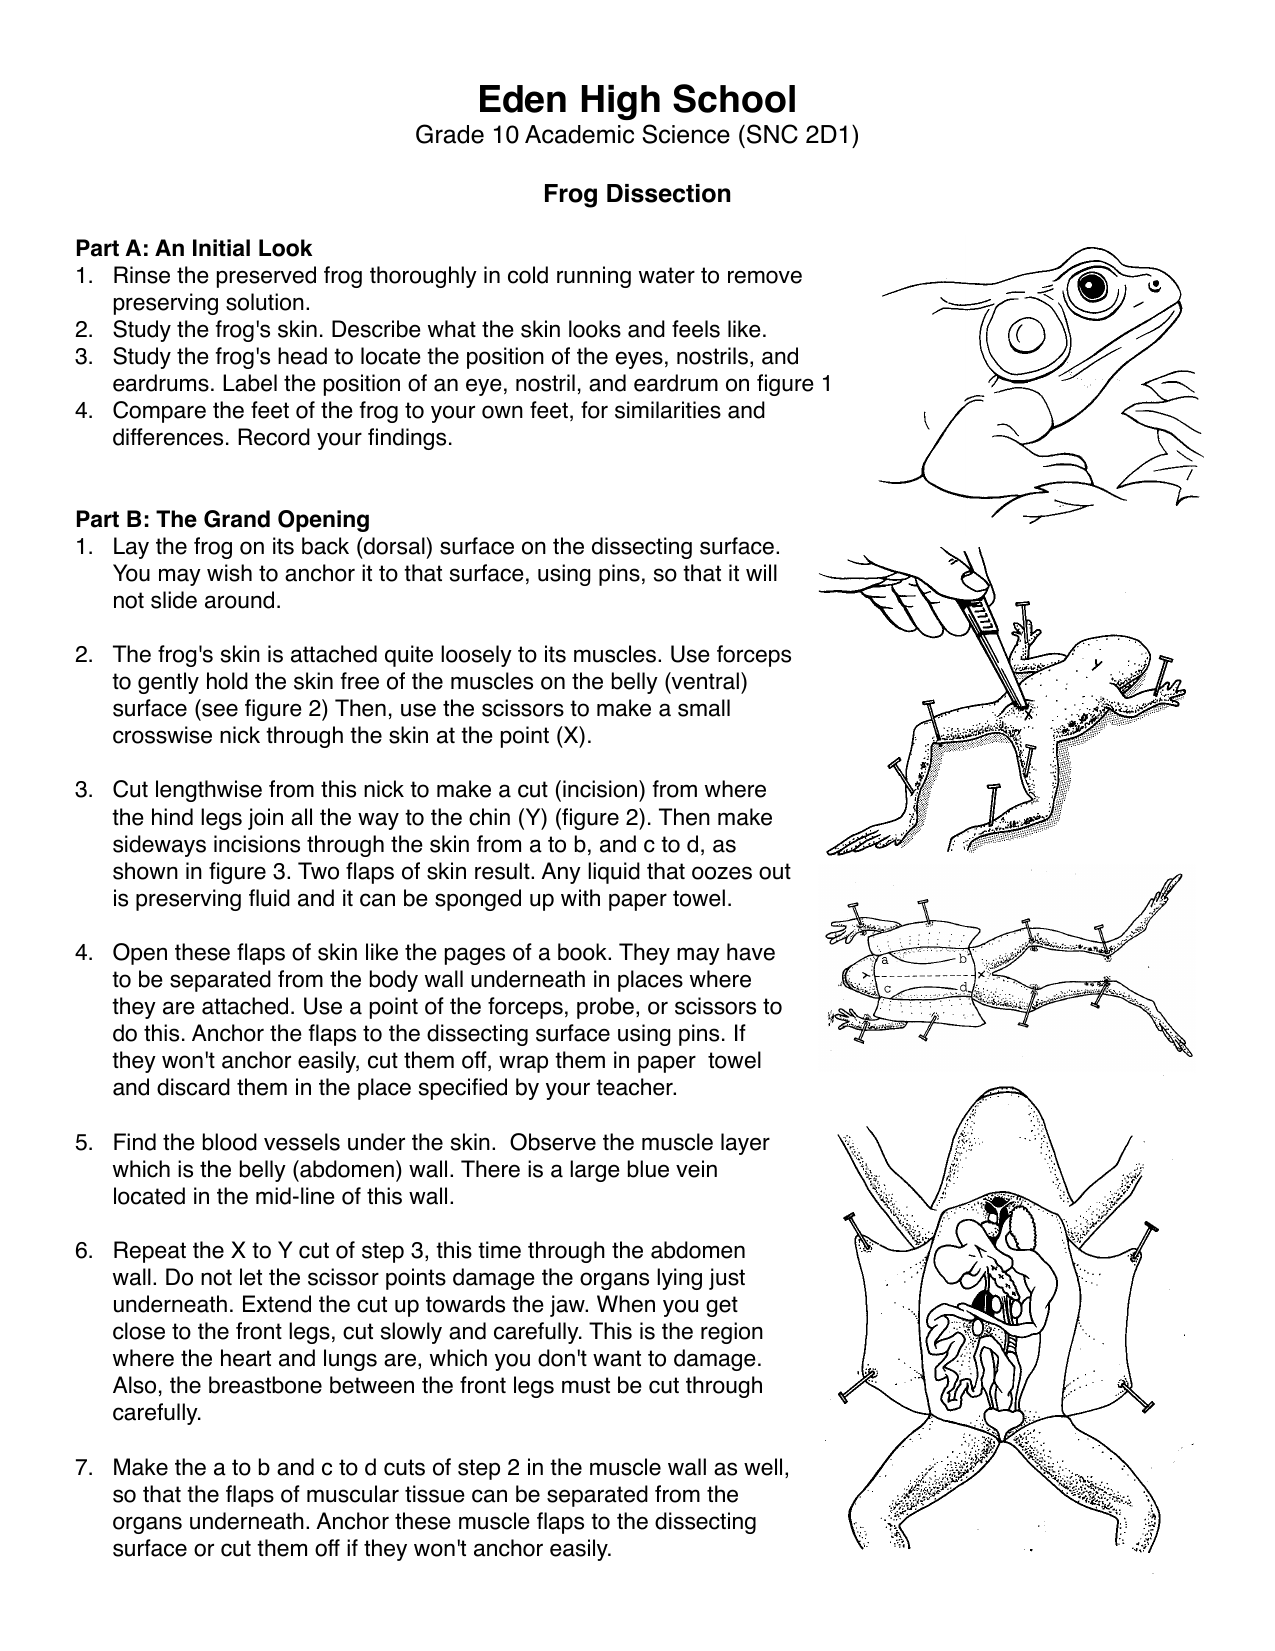 bio ho frog dissection Frog Dissection Worksheet Activity